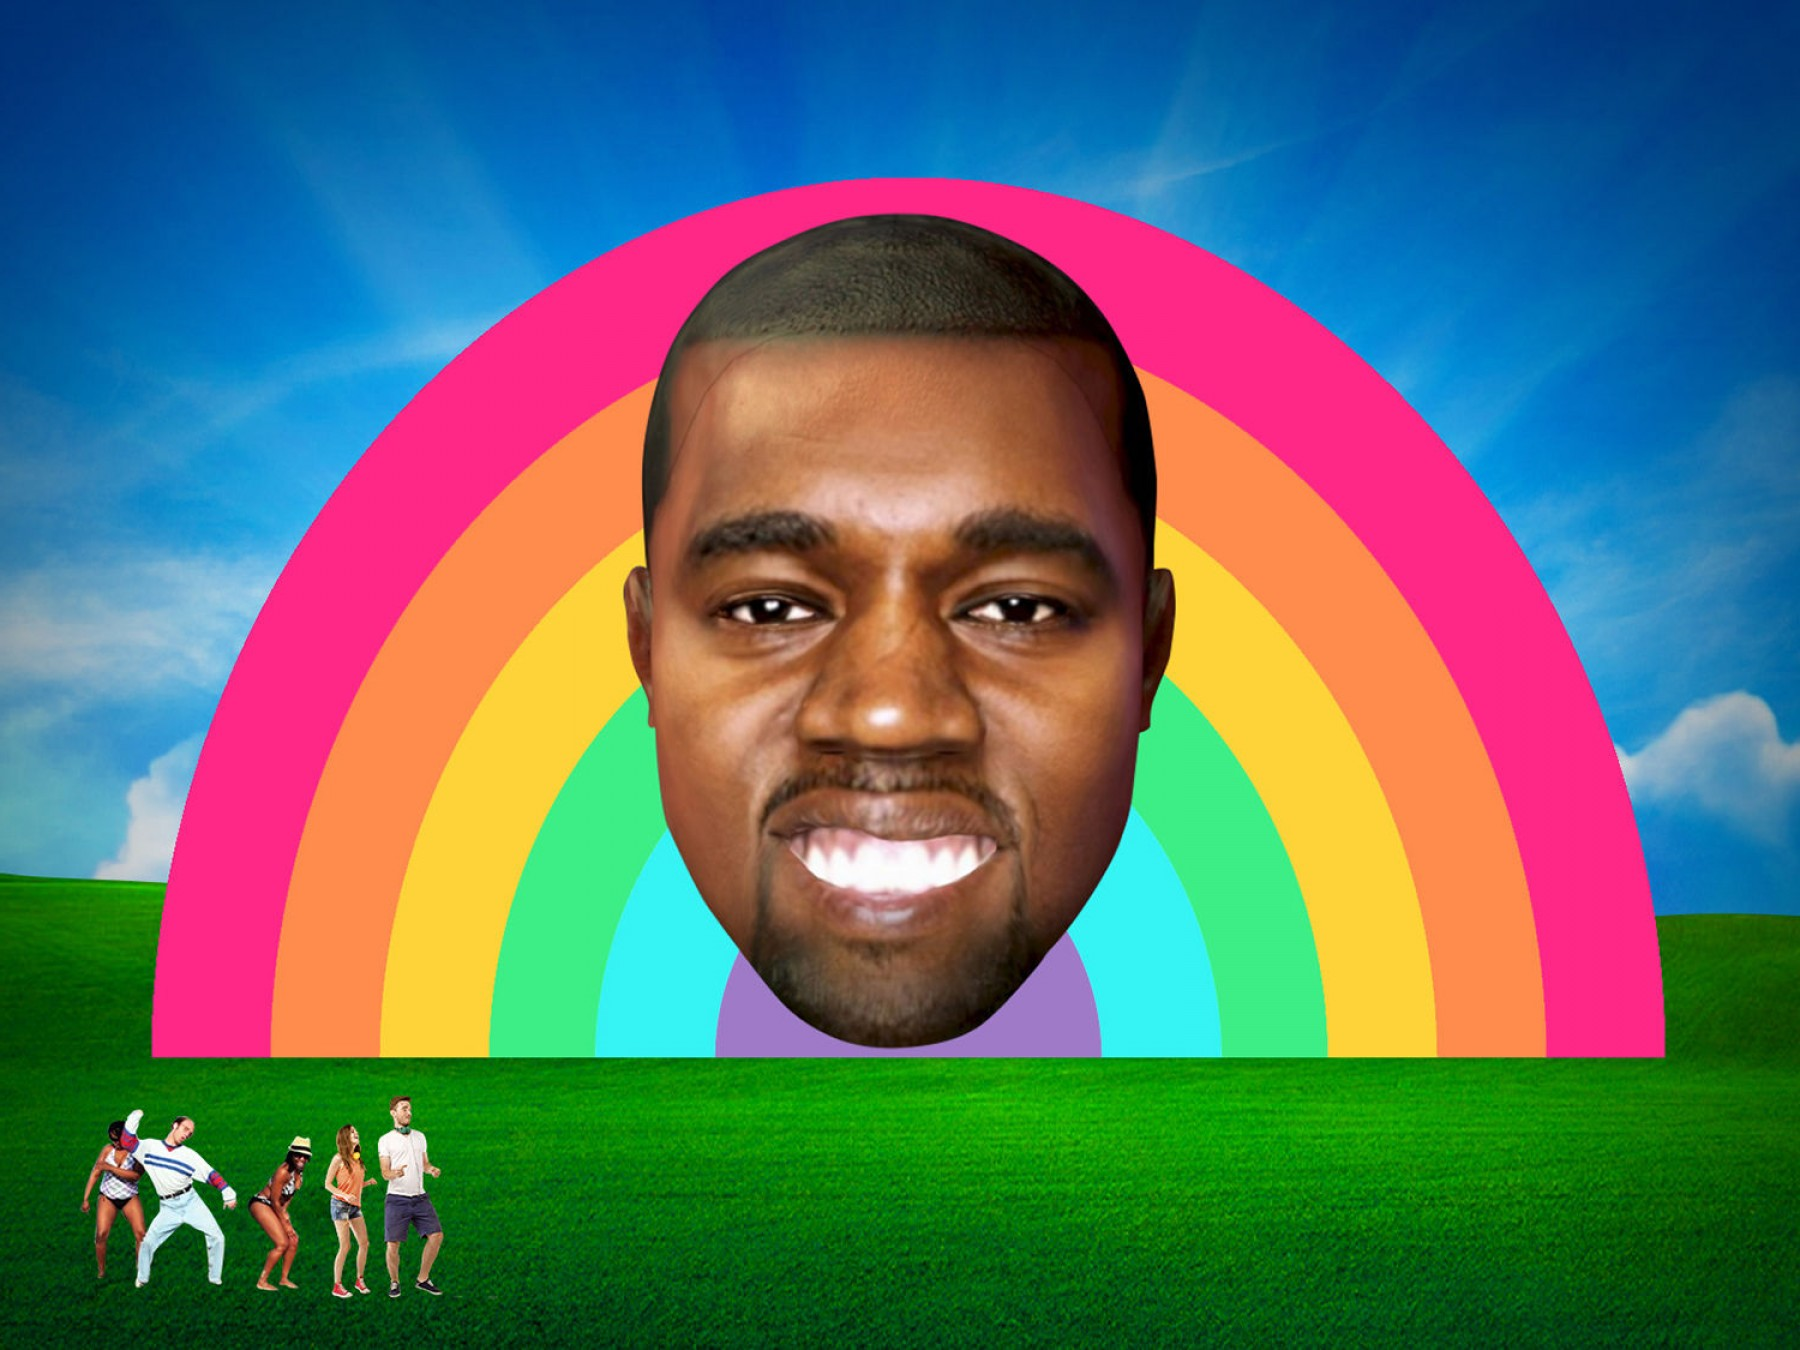 Kanye West Vector Paintig: Giant Inflatable Kanye West Head Appear This Years Bestival